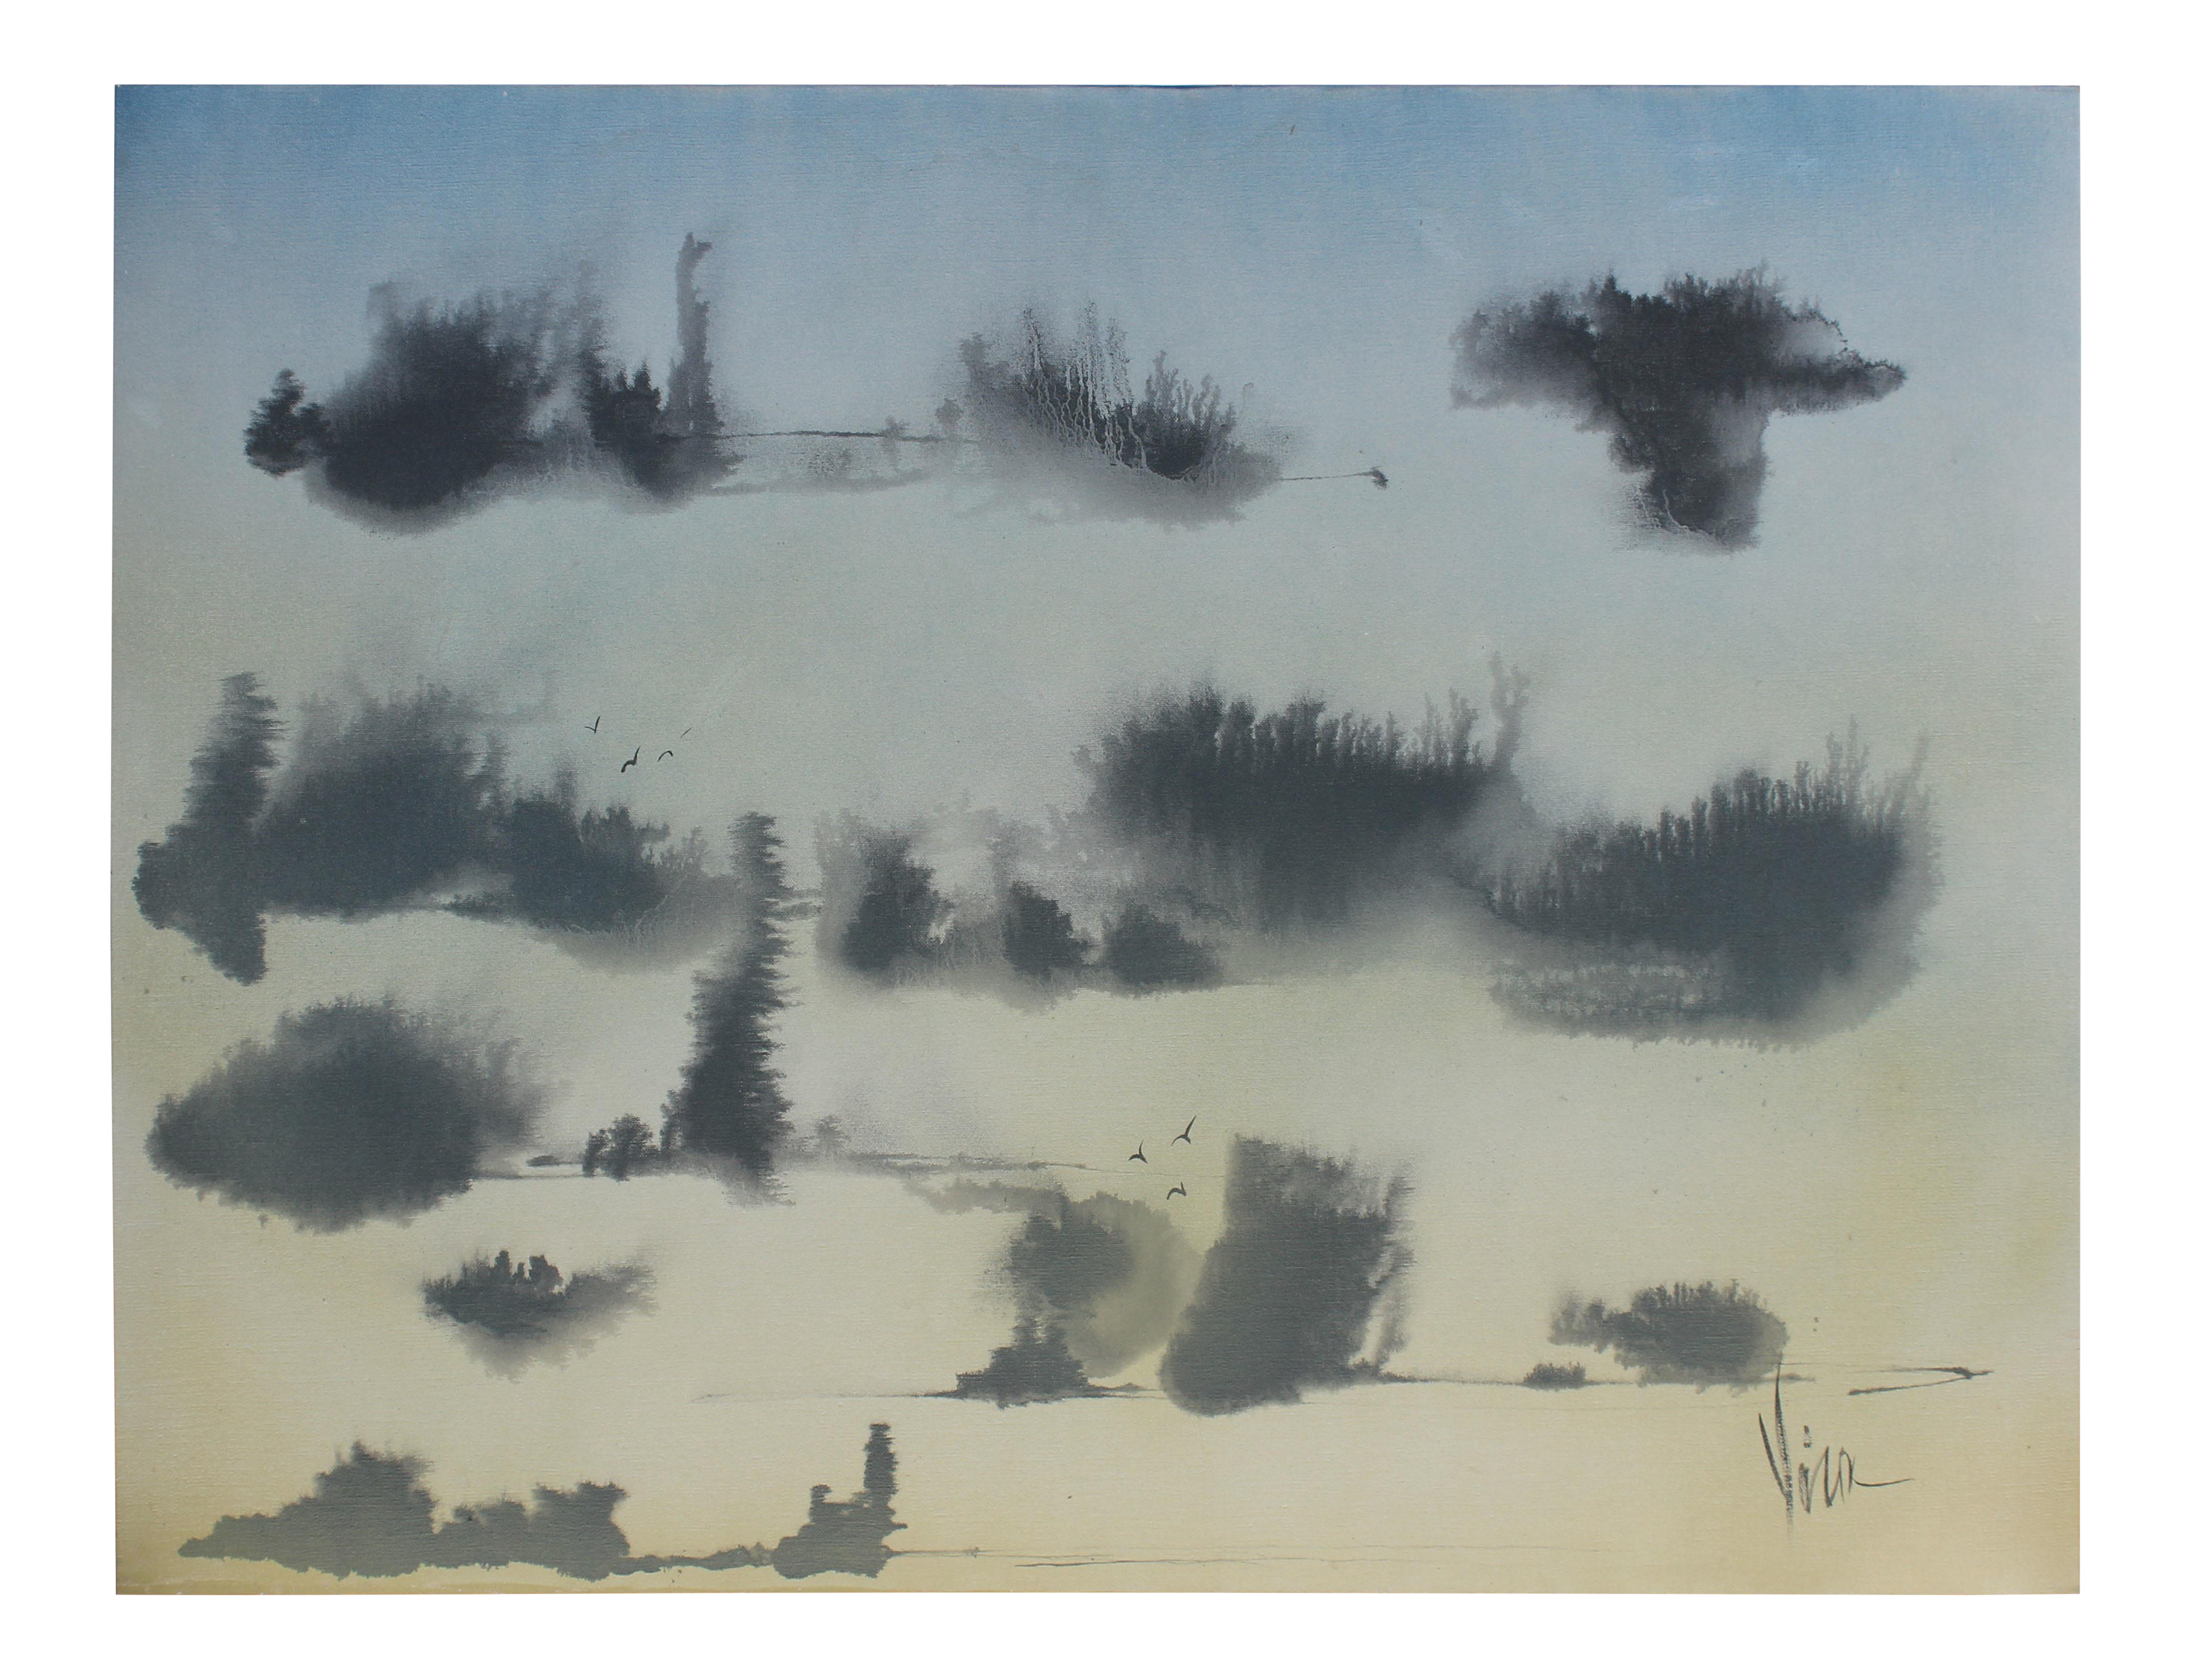 Atlanta drawing sky. Japanese landscape abstracted oil